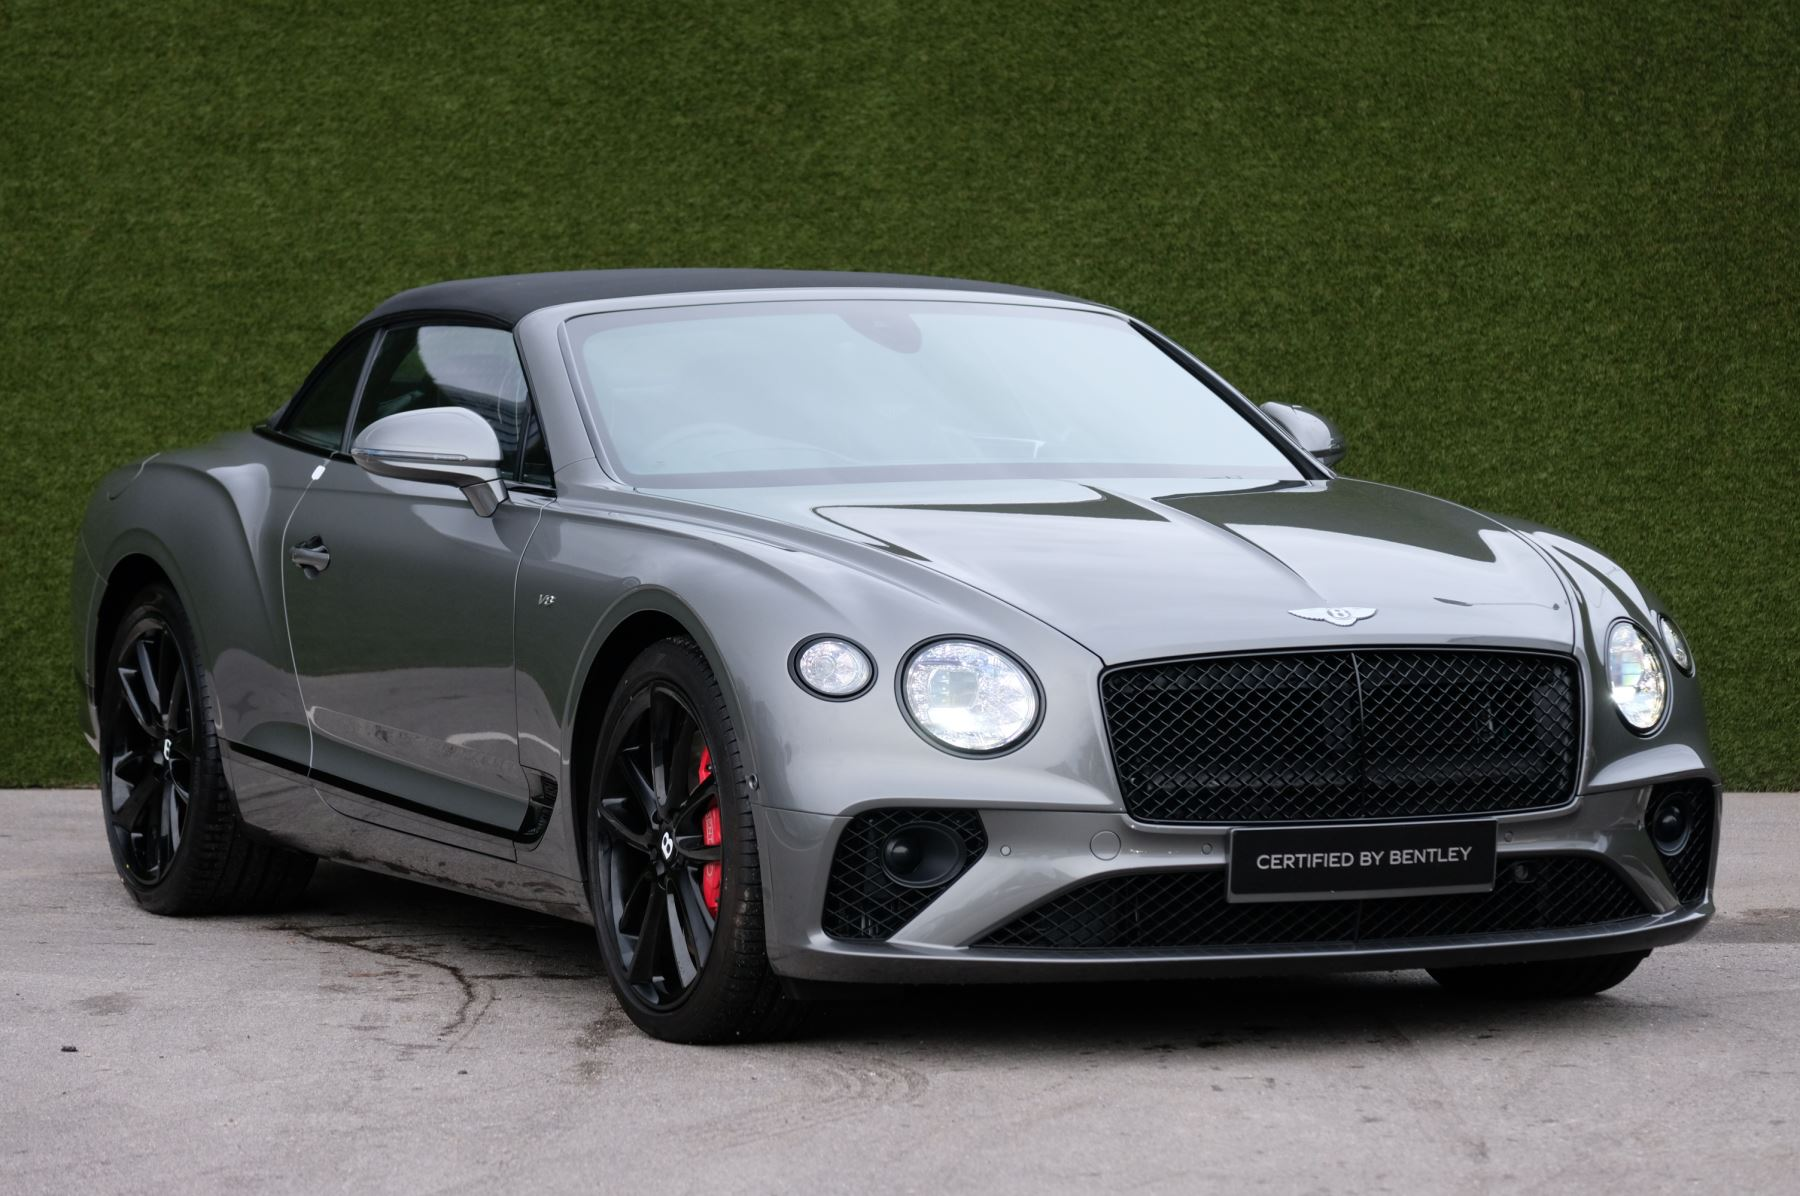 Bentley Continental GTC 4.0 V8 Mulliner Driving Spec Auto image 1